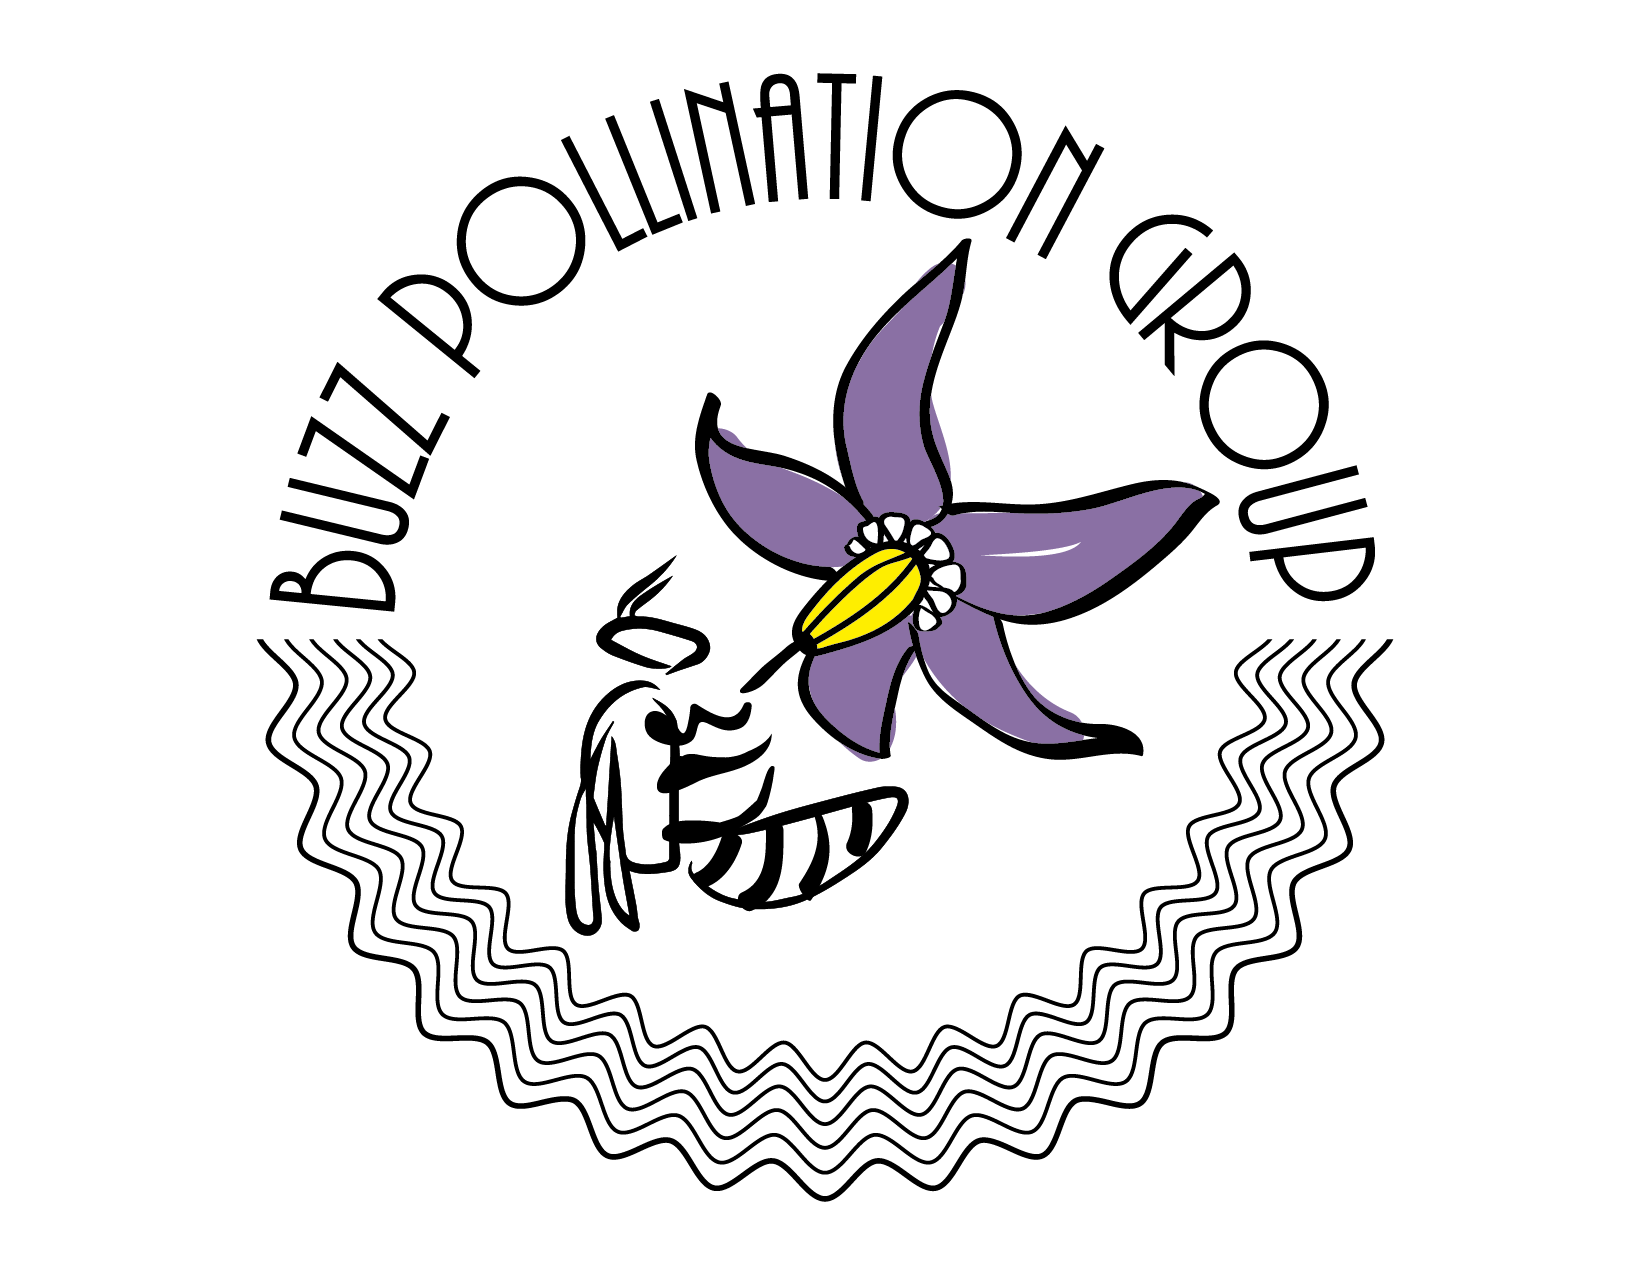 LOGO BUZZ POLLINATION GROUP